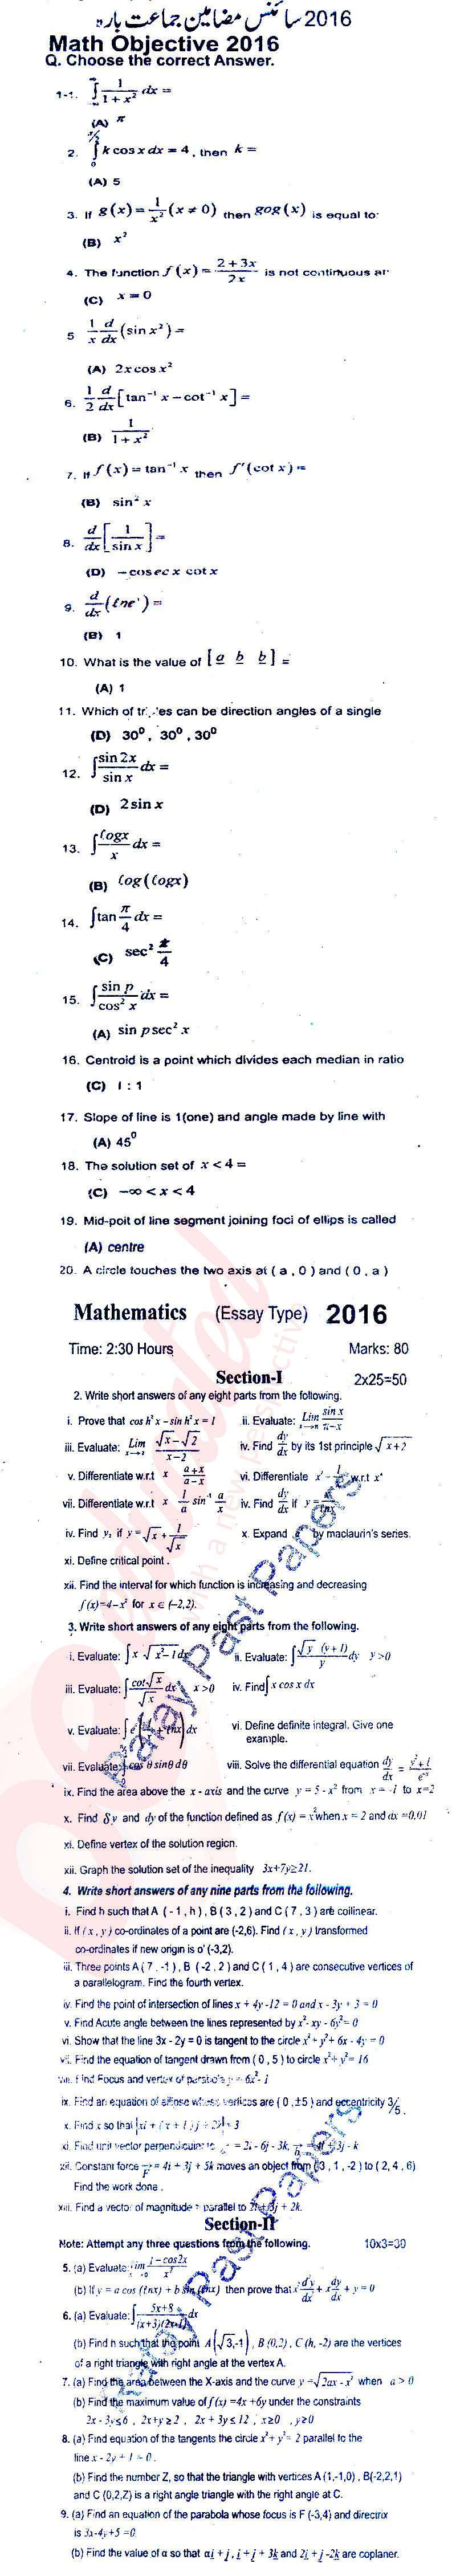 mathematics subject 2 essay For general instructions on how  reasoning test with essay, with sat subject tests strongly  to take one sat subject test in mathematics.